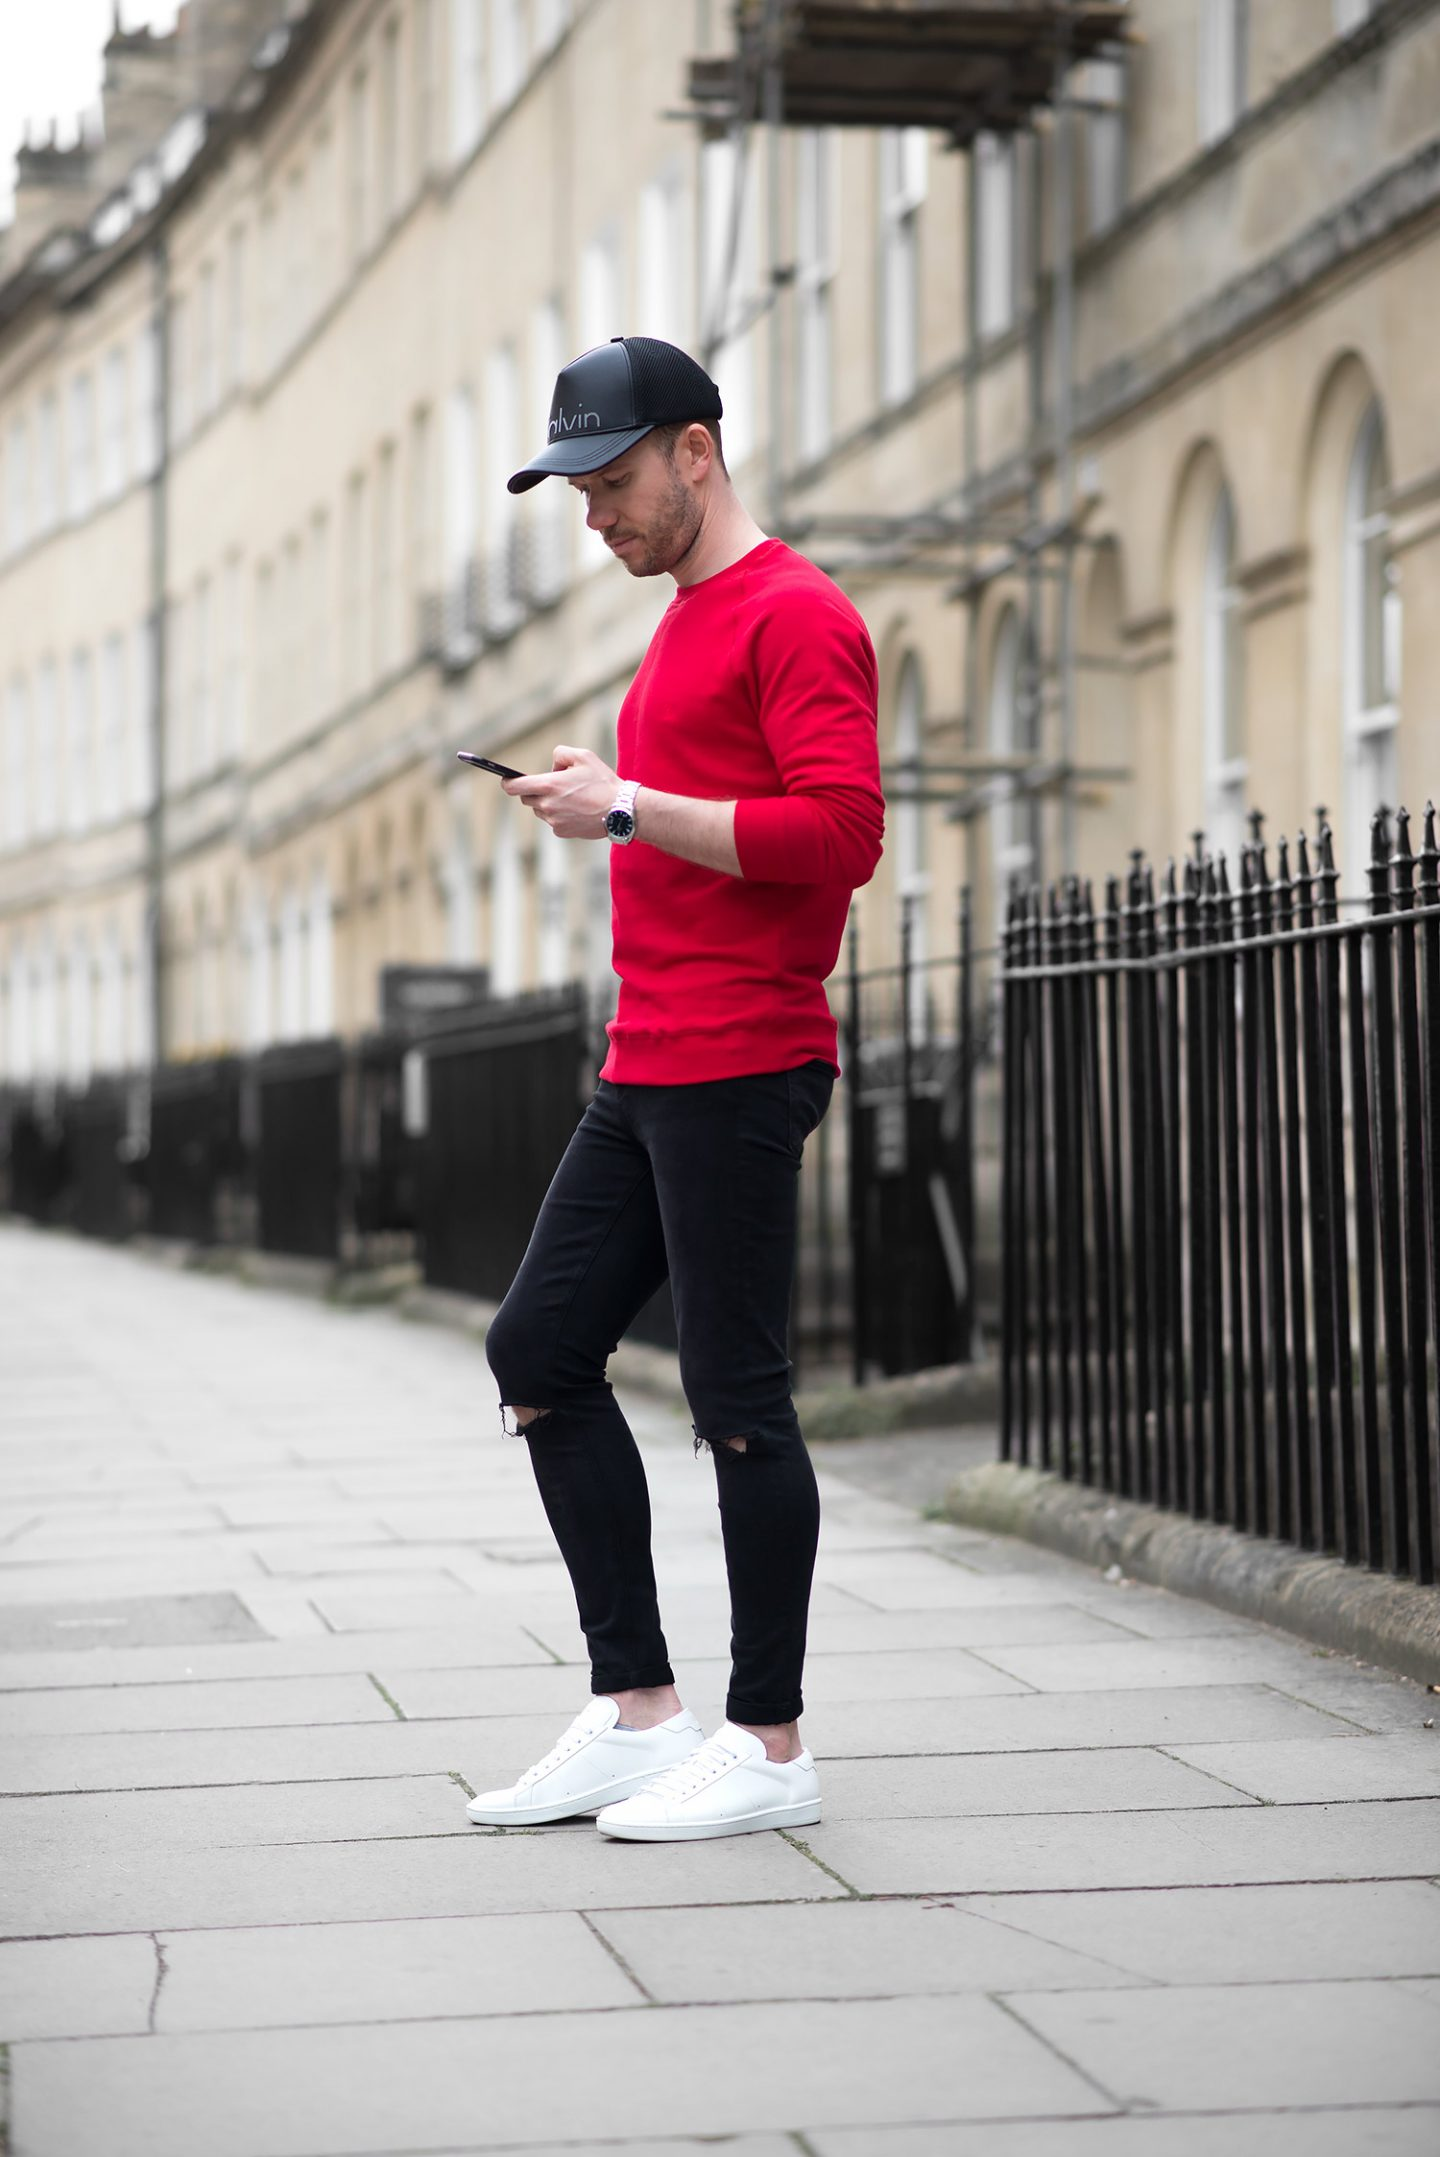 2896cd51bff ... Mens-Fashion-Blogger-Red-Sweatshirt-Ripped-Black-Skinny-Jeans-Baseball- Cap-Outfit-1440x2157.jpg ...